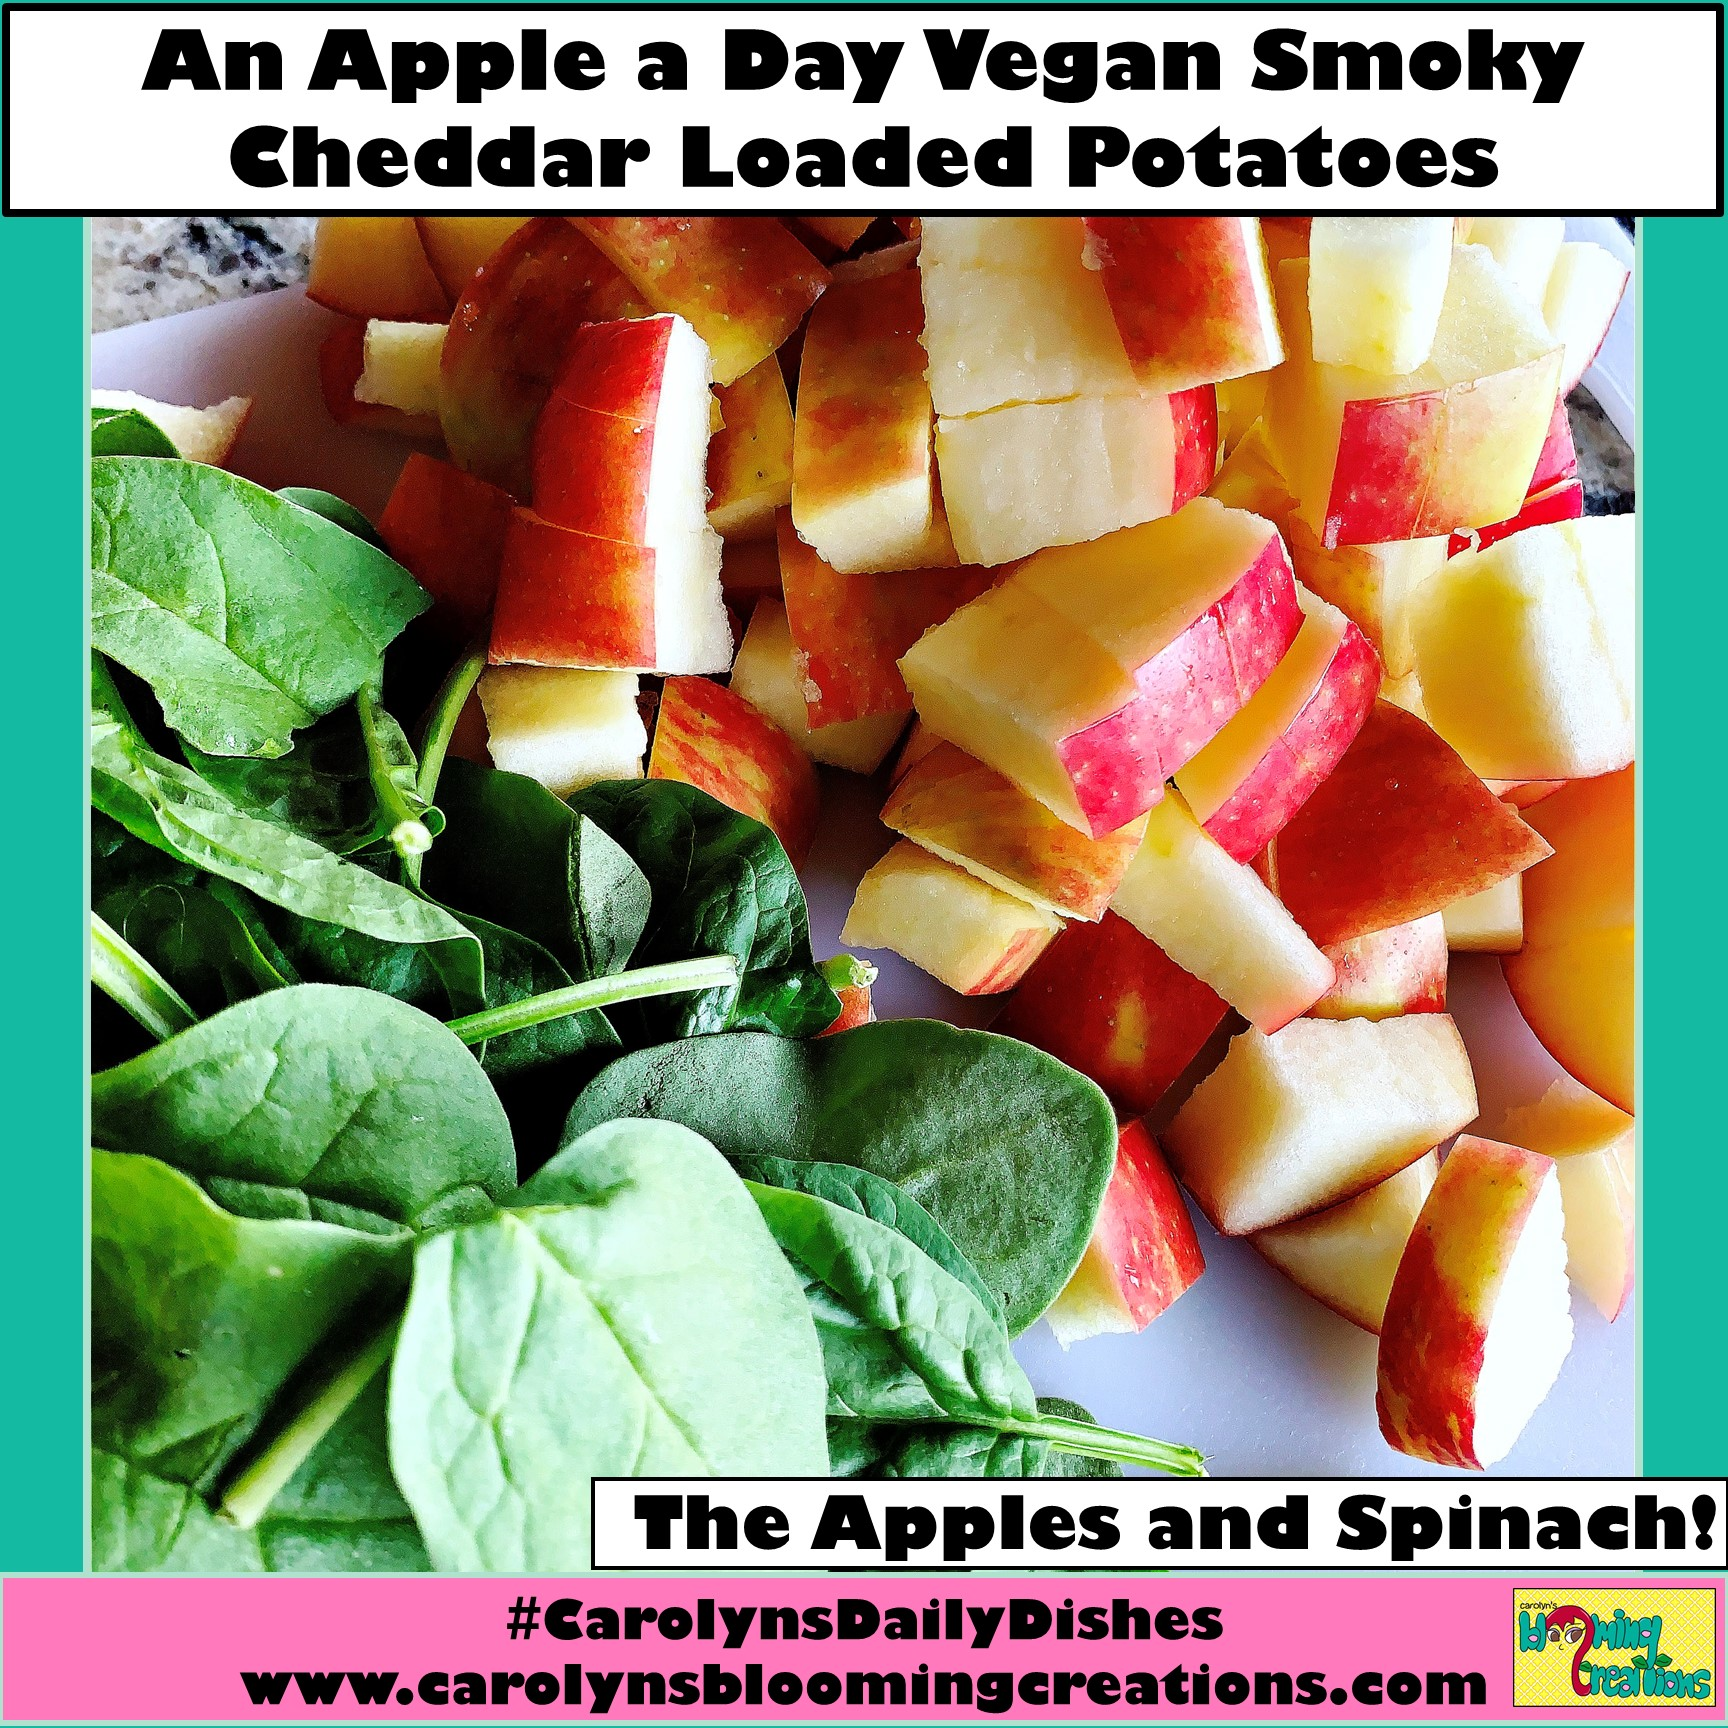 The spinach and apples, uncooked.  Recipe, food preparation, styling and photography by Carolyn J. Braden  Pin Me! www.carolynsbloomingcreations.com